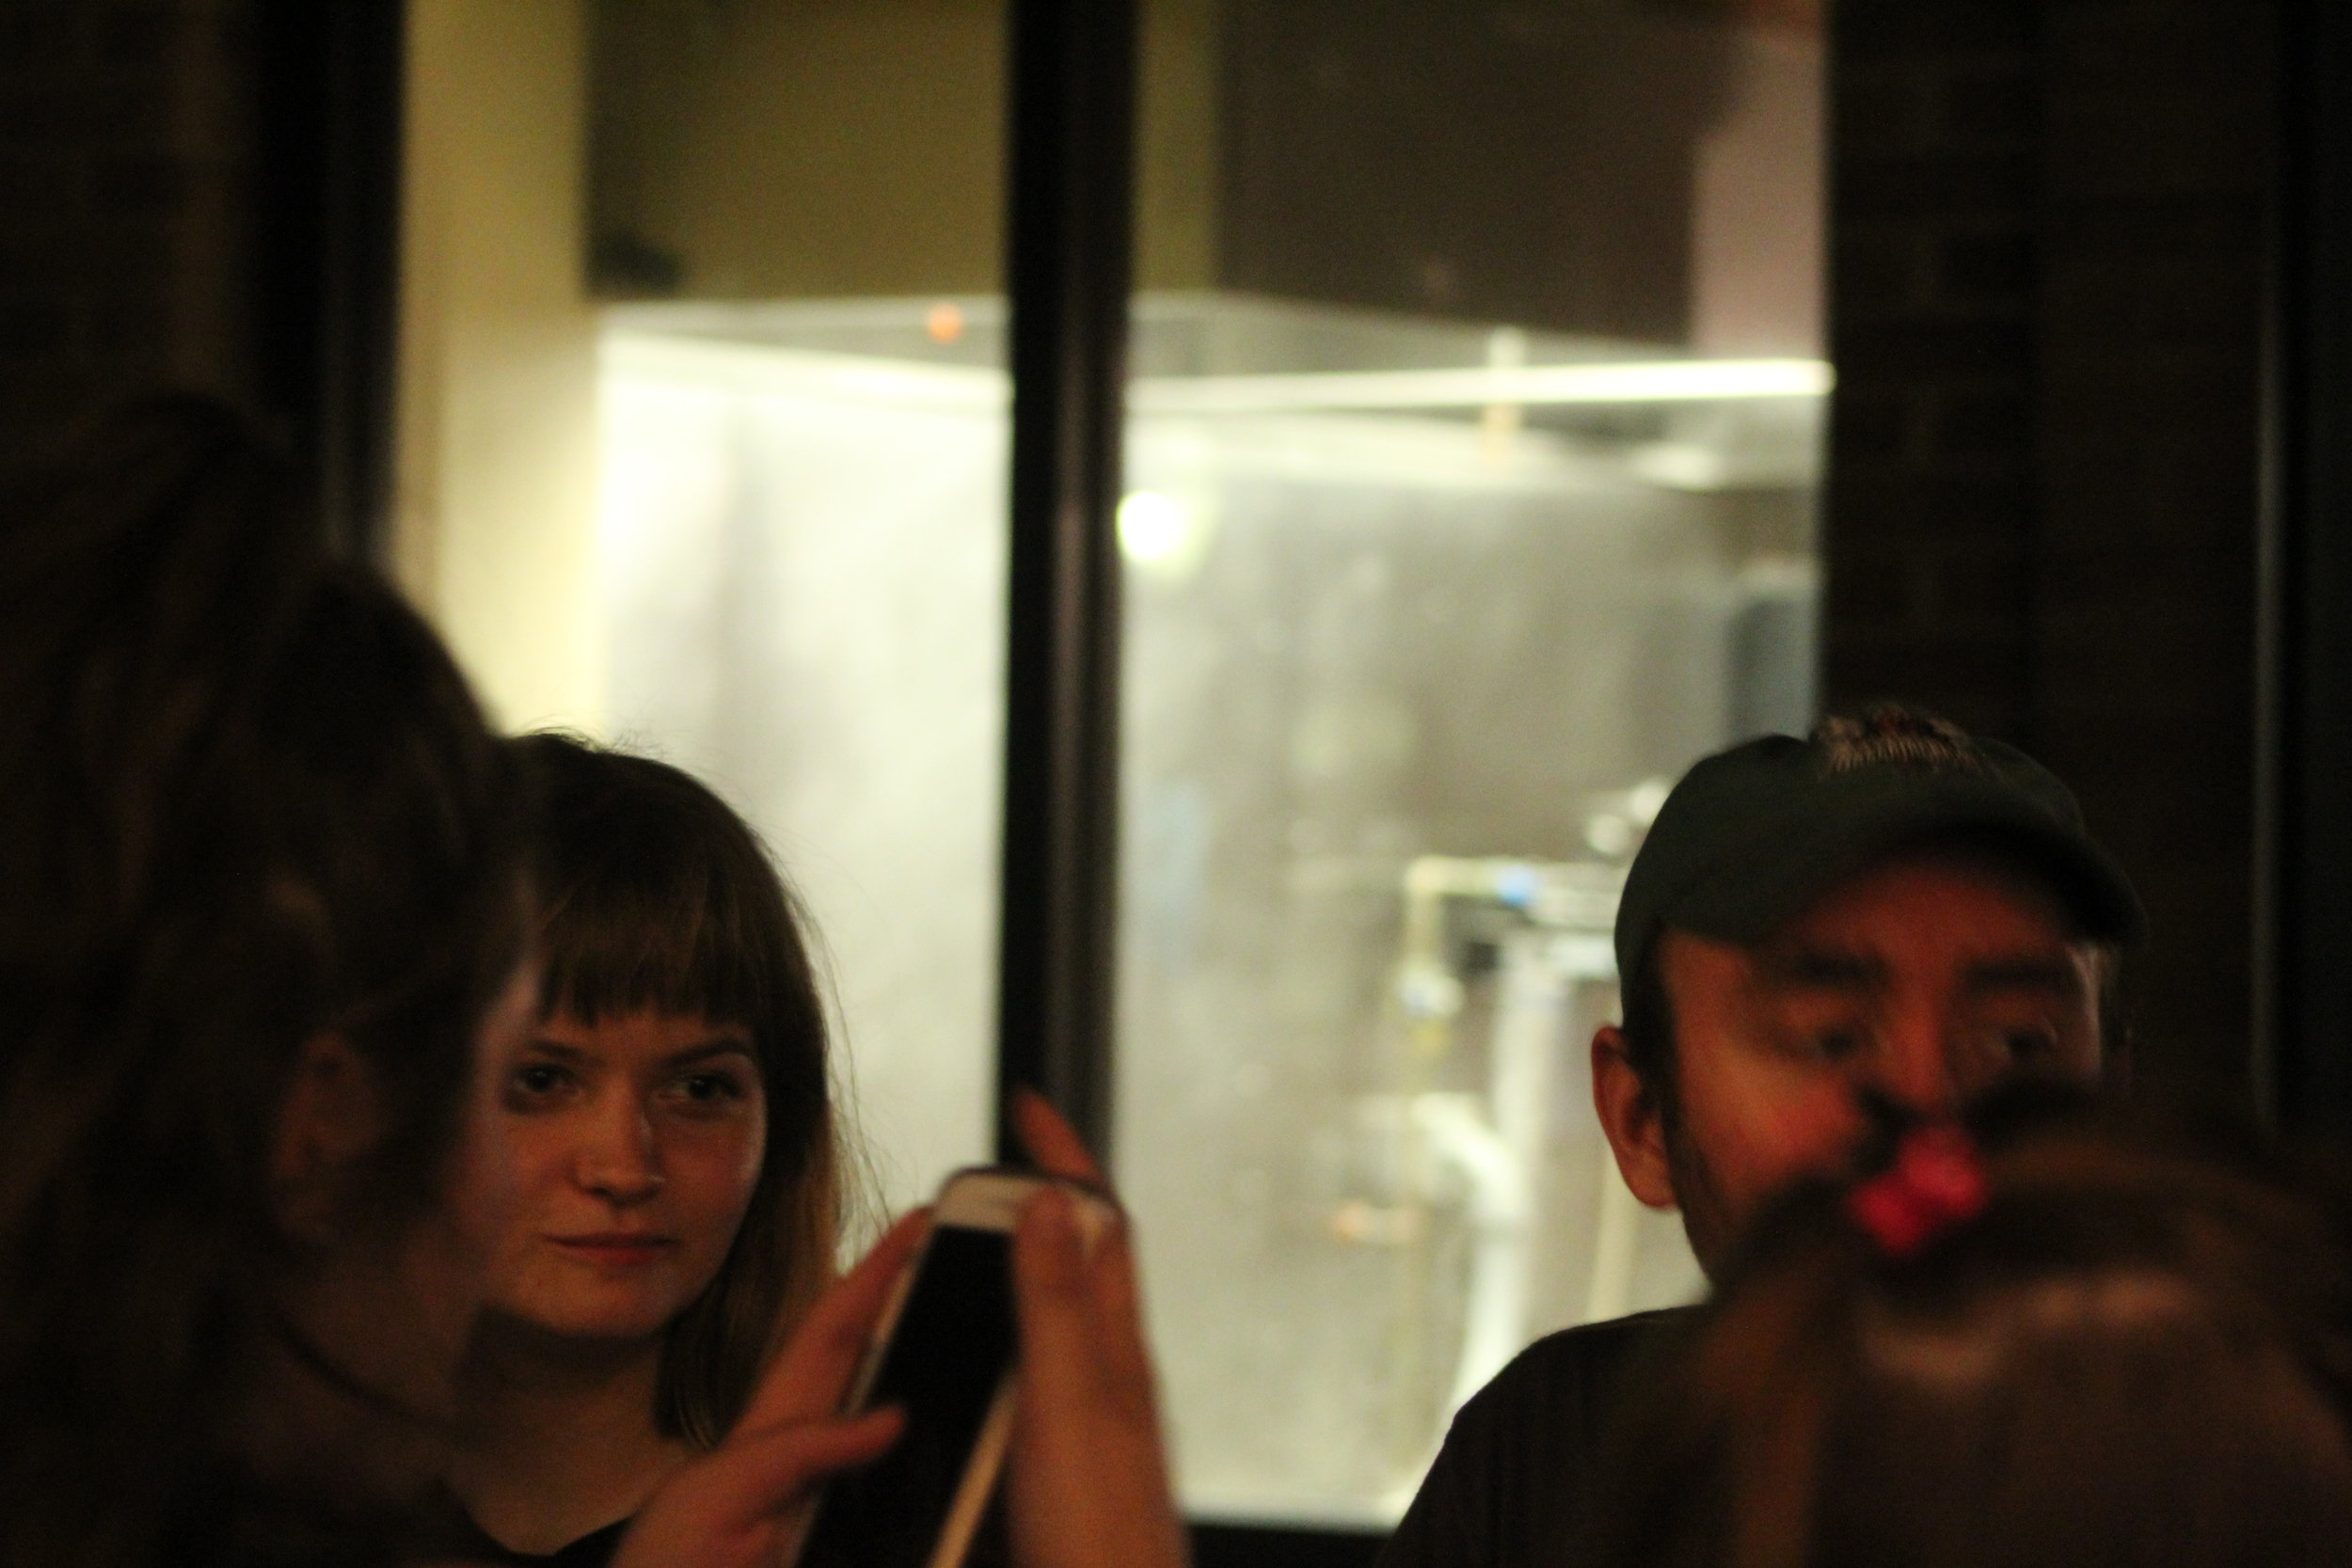 Saw-player Molly Druga and violinist Dan Fetterolf